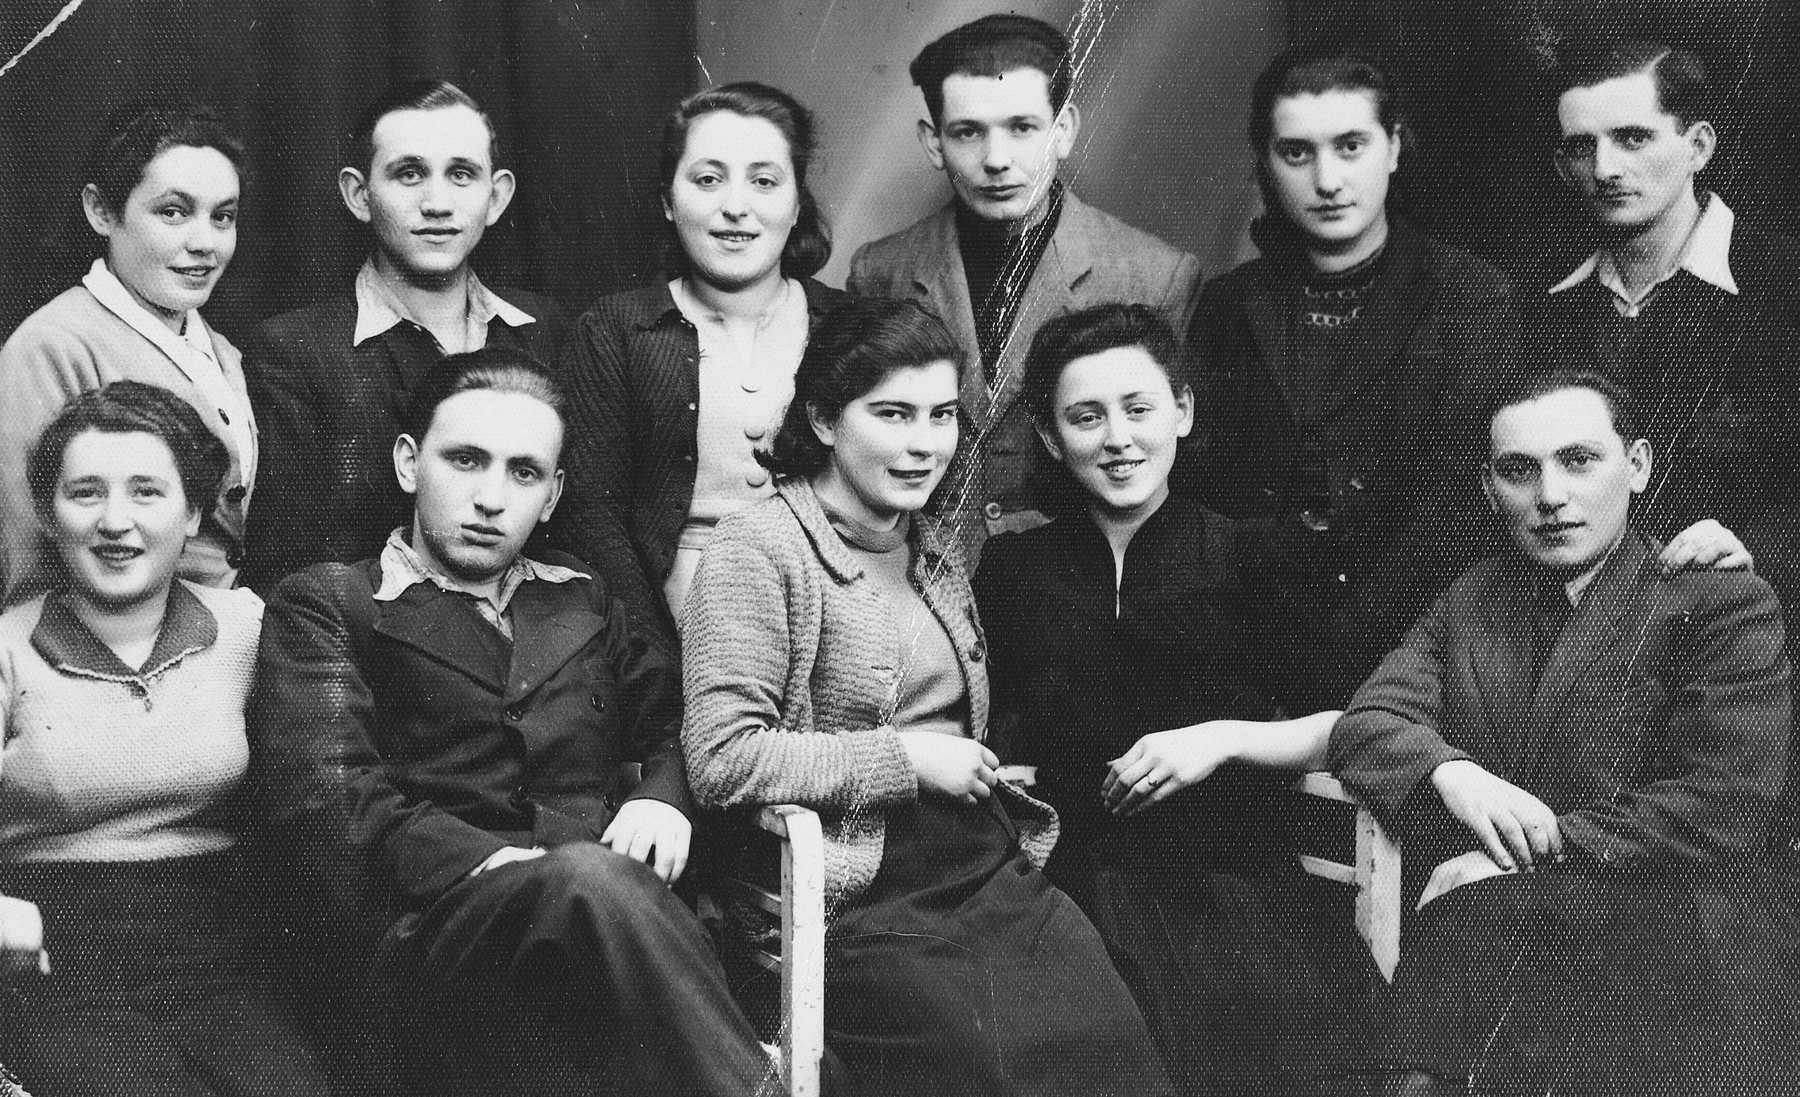 Group of Jewish internees in the Tittmoning internment camp where they were kept by virtue of holding foreign passports.    Cwi Rosenwein held a Paraguayan passport.